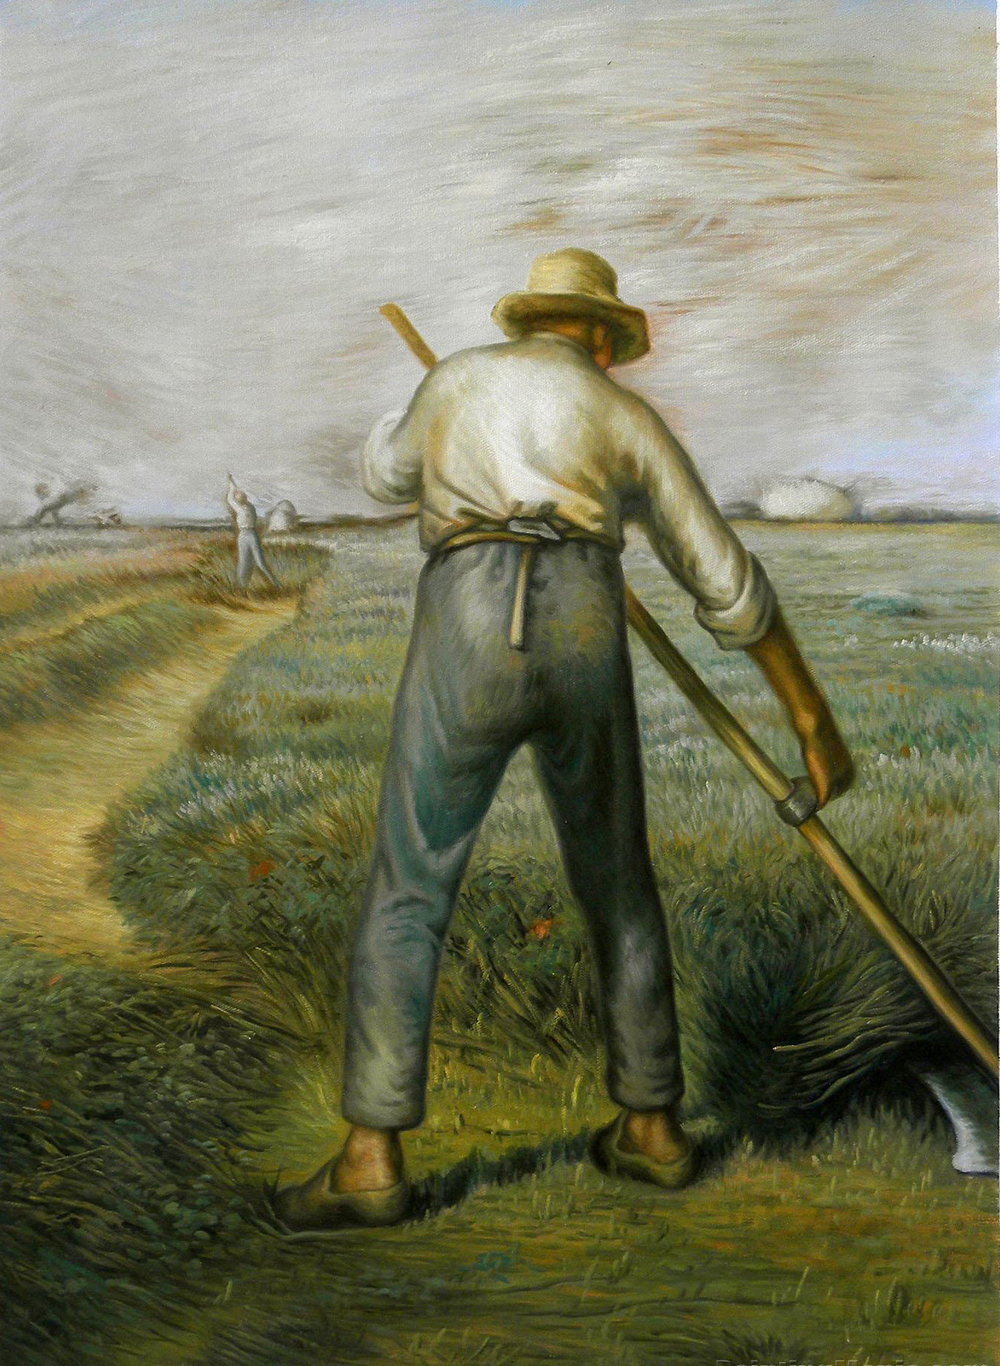 The Reaper, Jean-Francois Millet; 1853; oil on canvas.